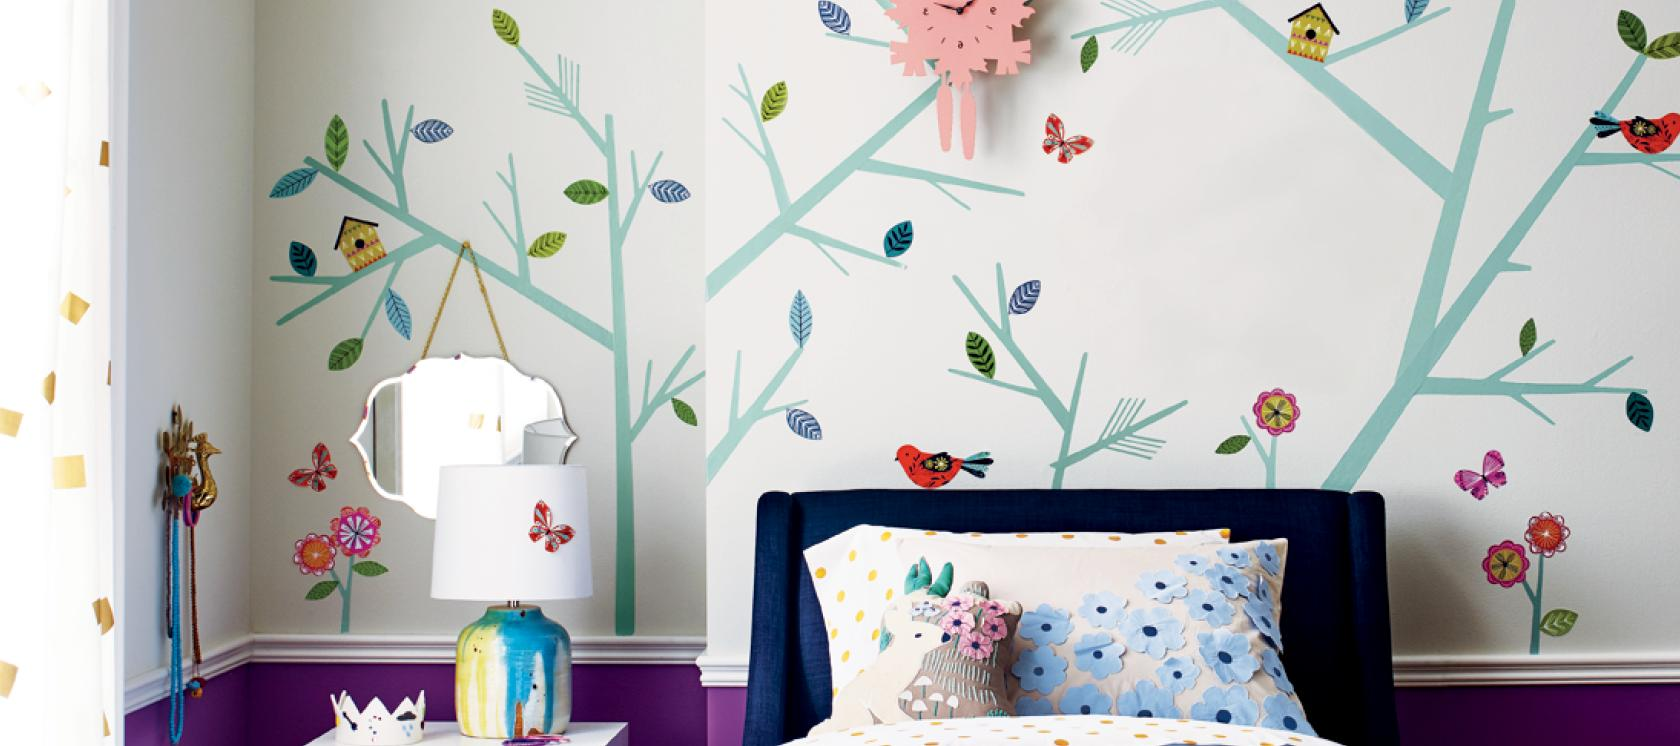 Baby and Kids Decor | Crate and Barrel